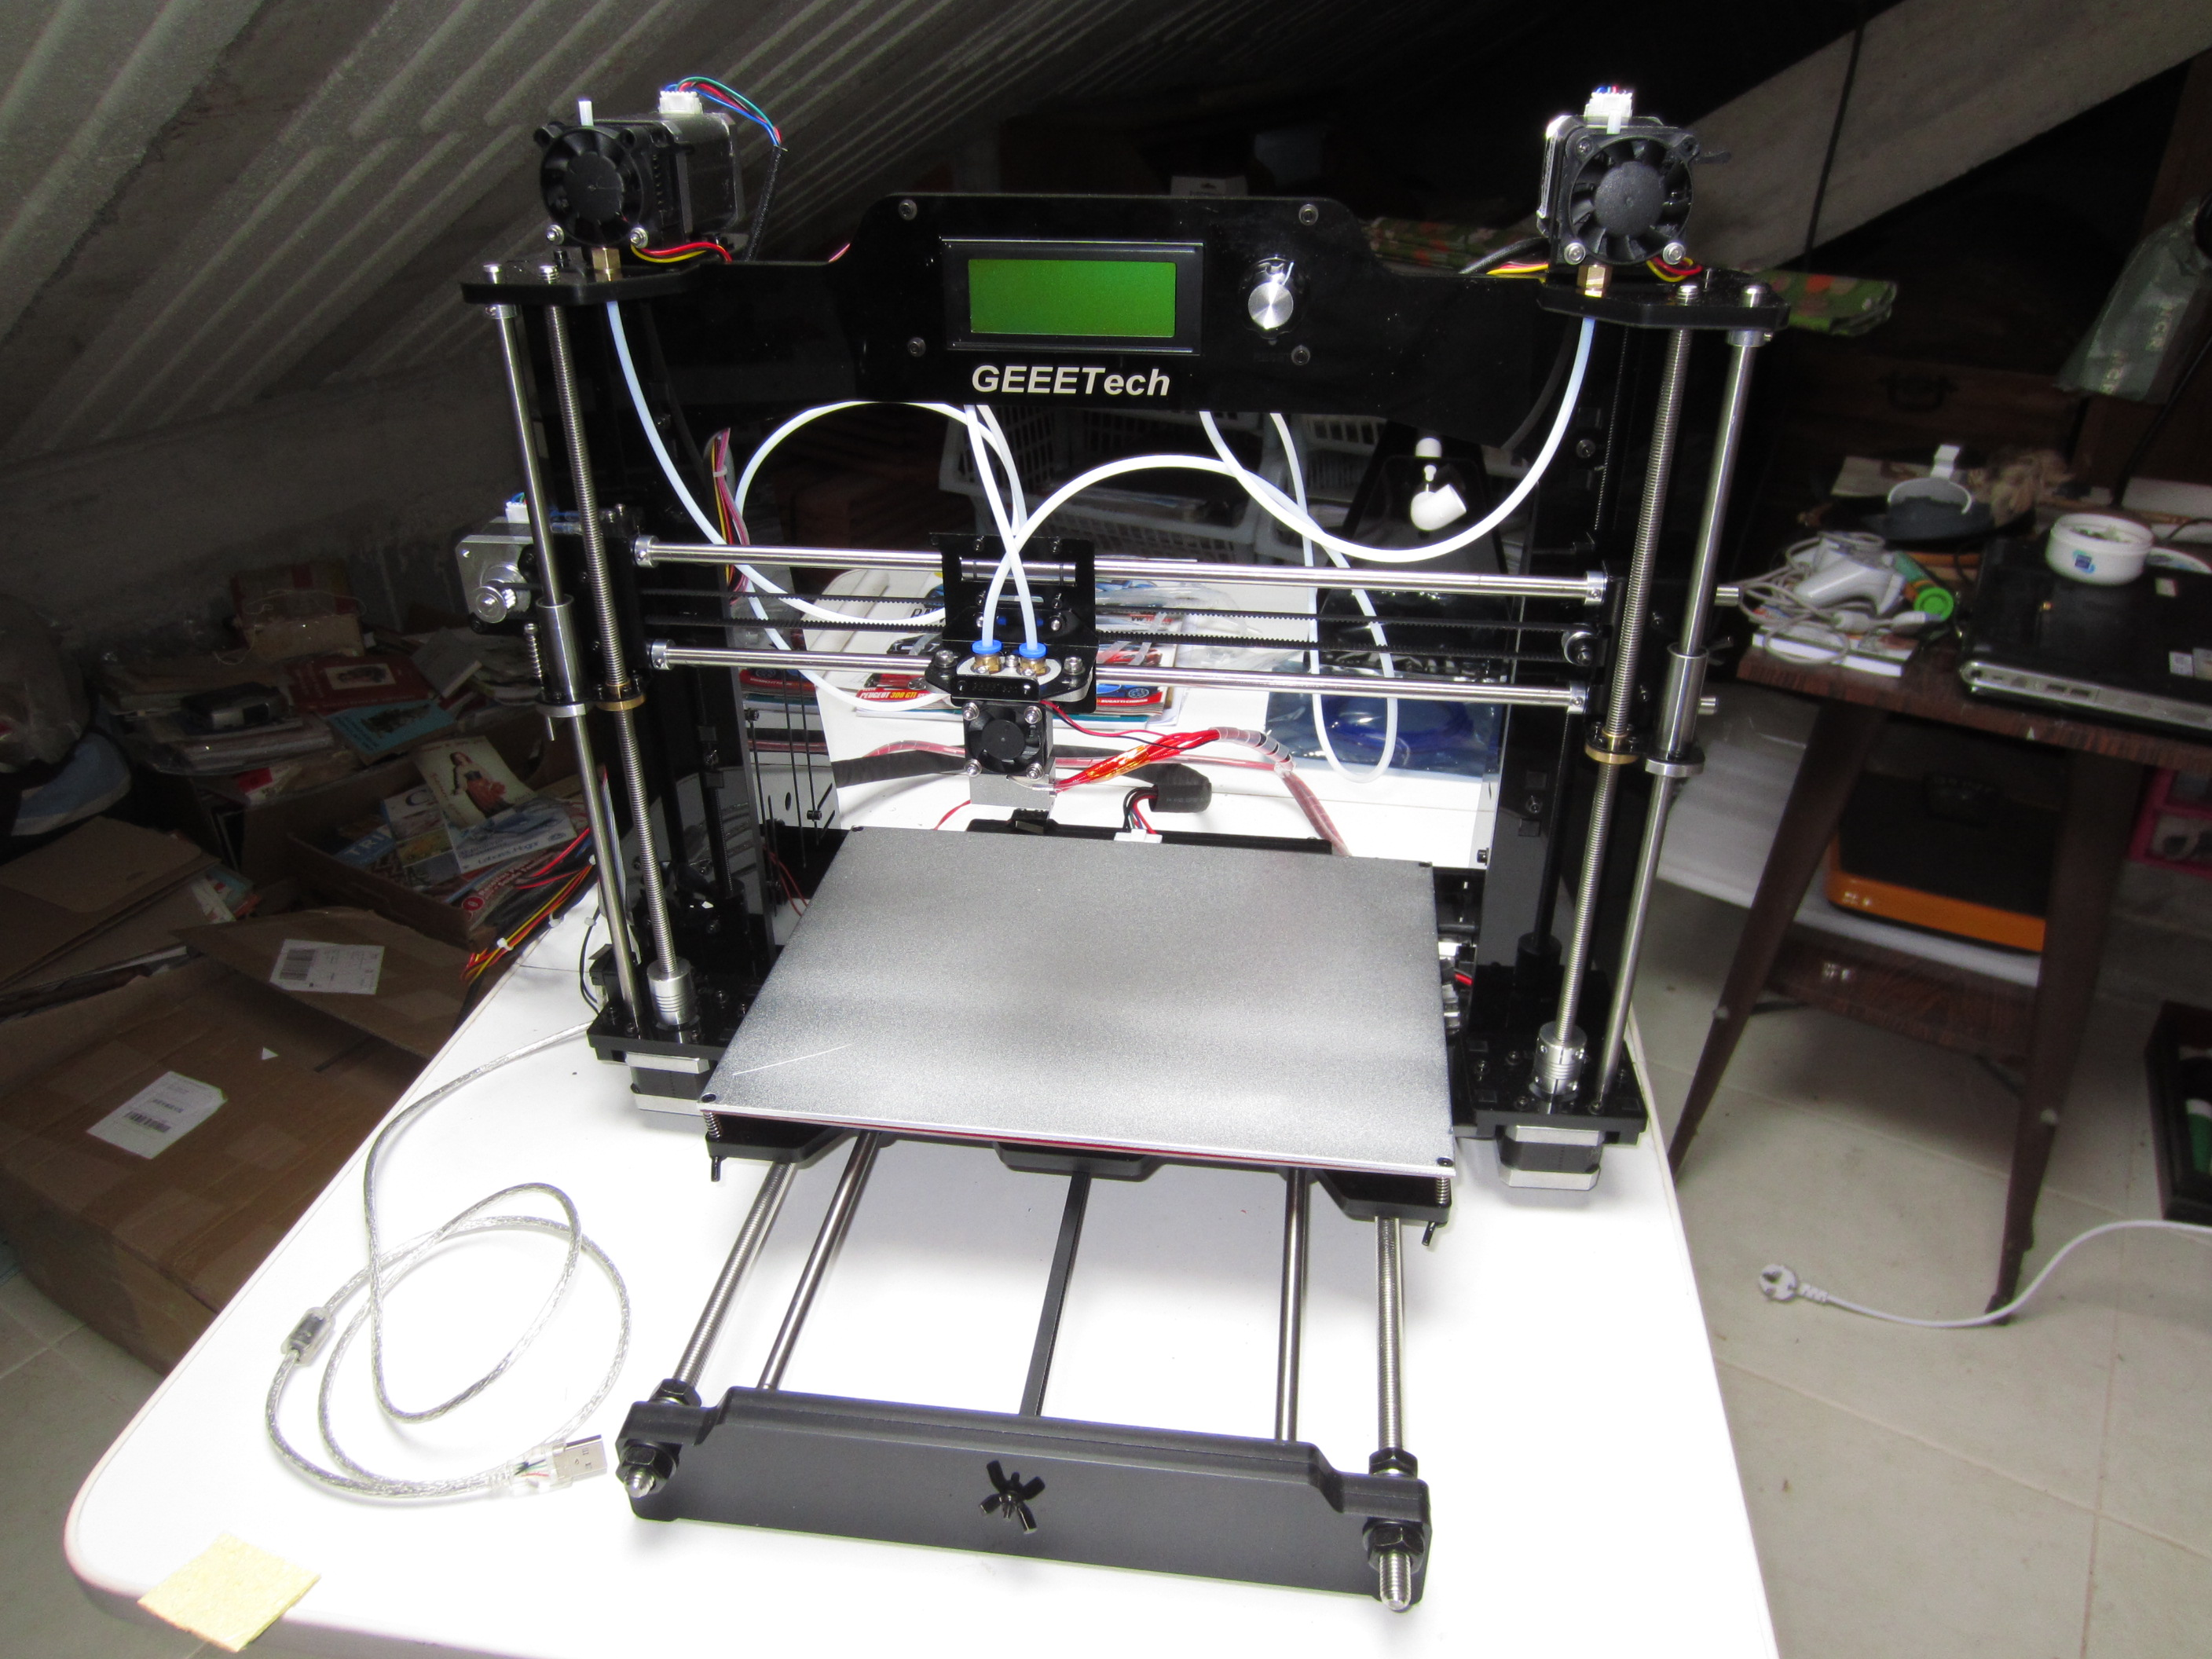 Picture of Geeetech M201 - Mix Your Prints!!